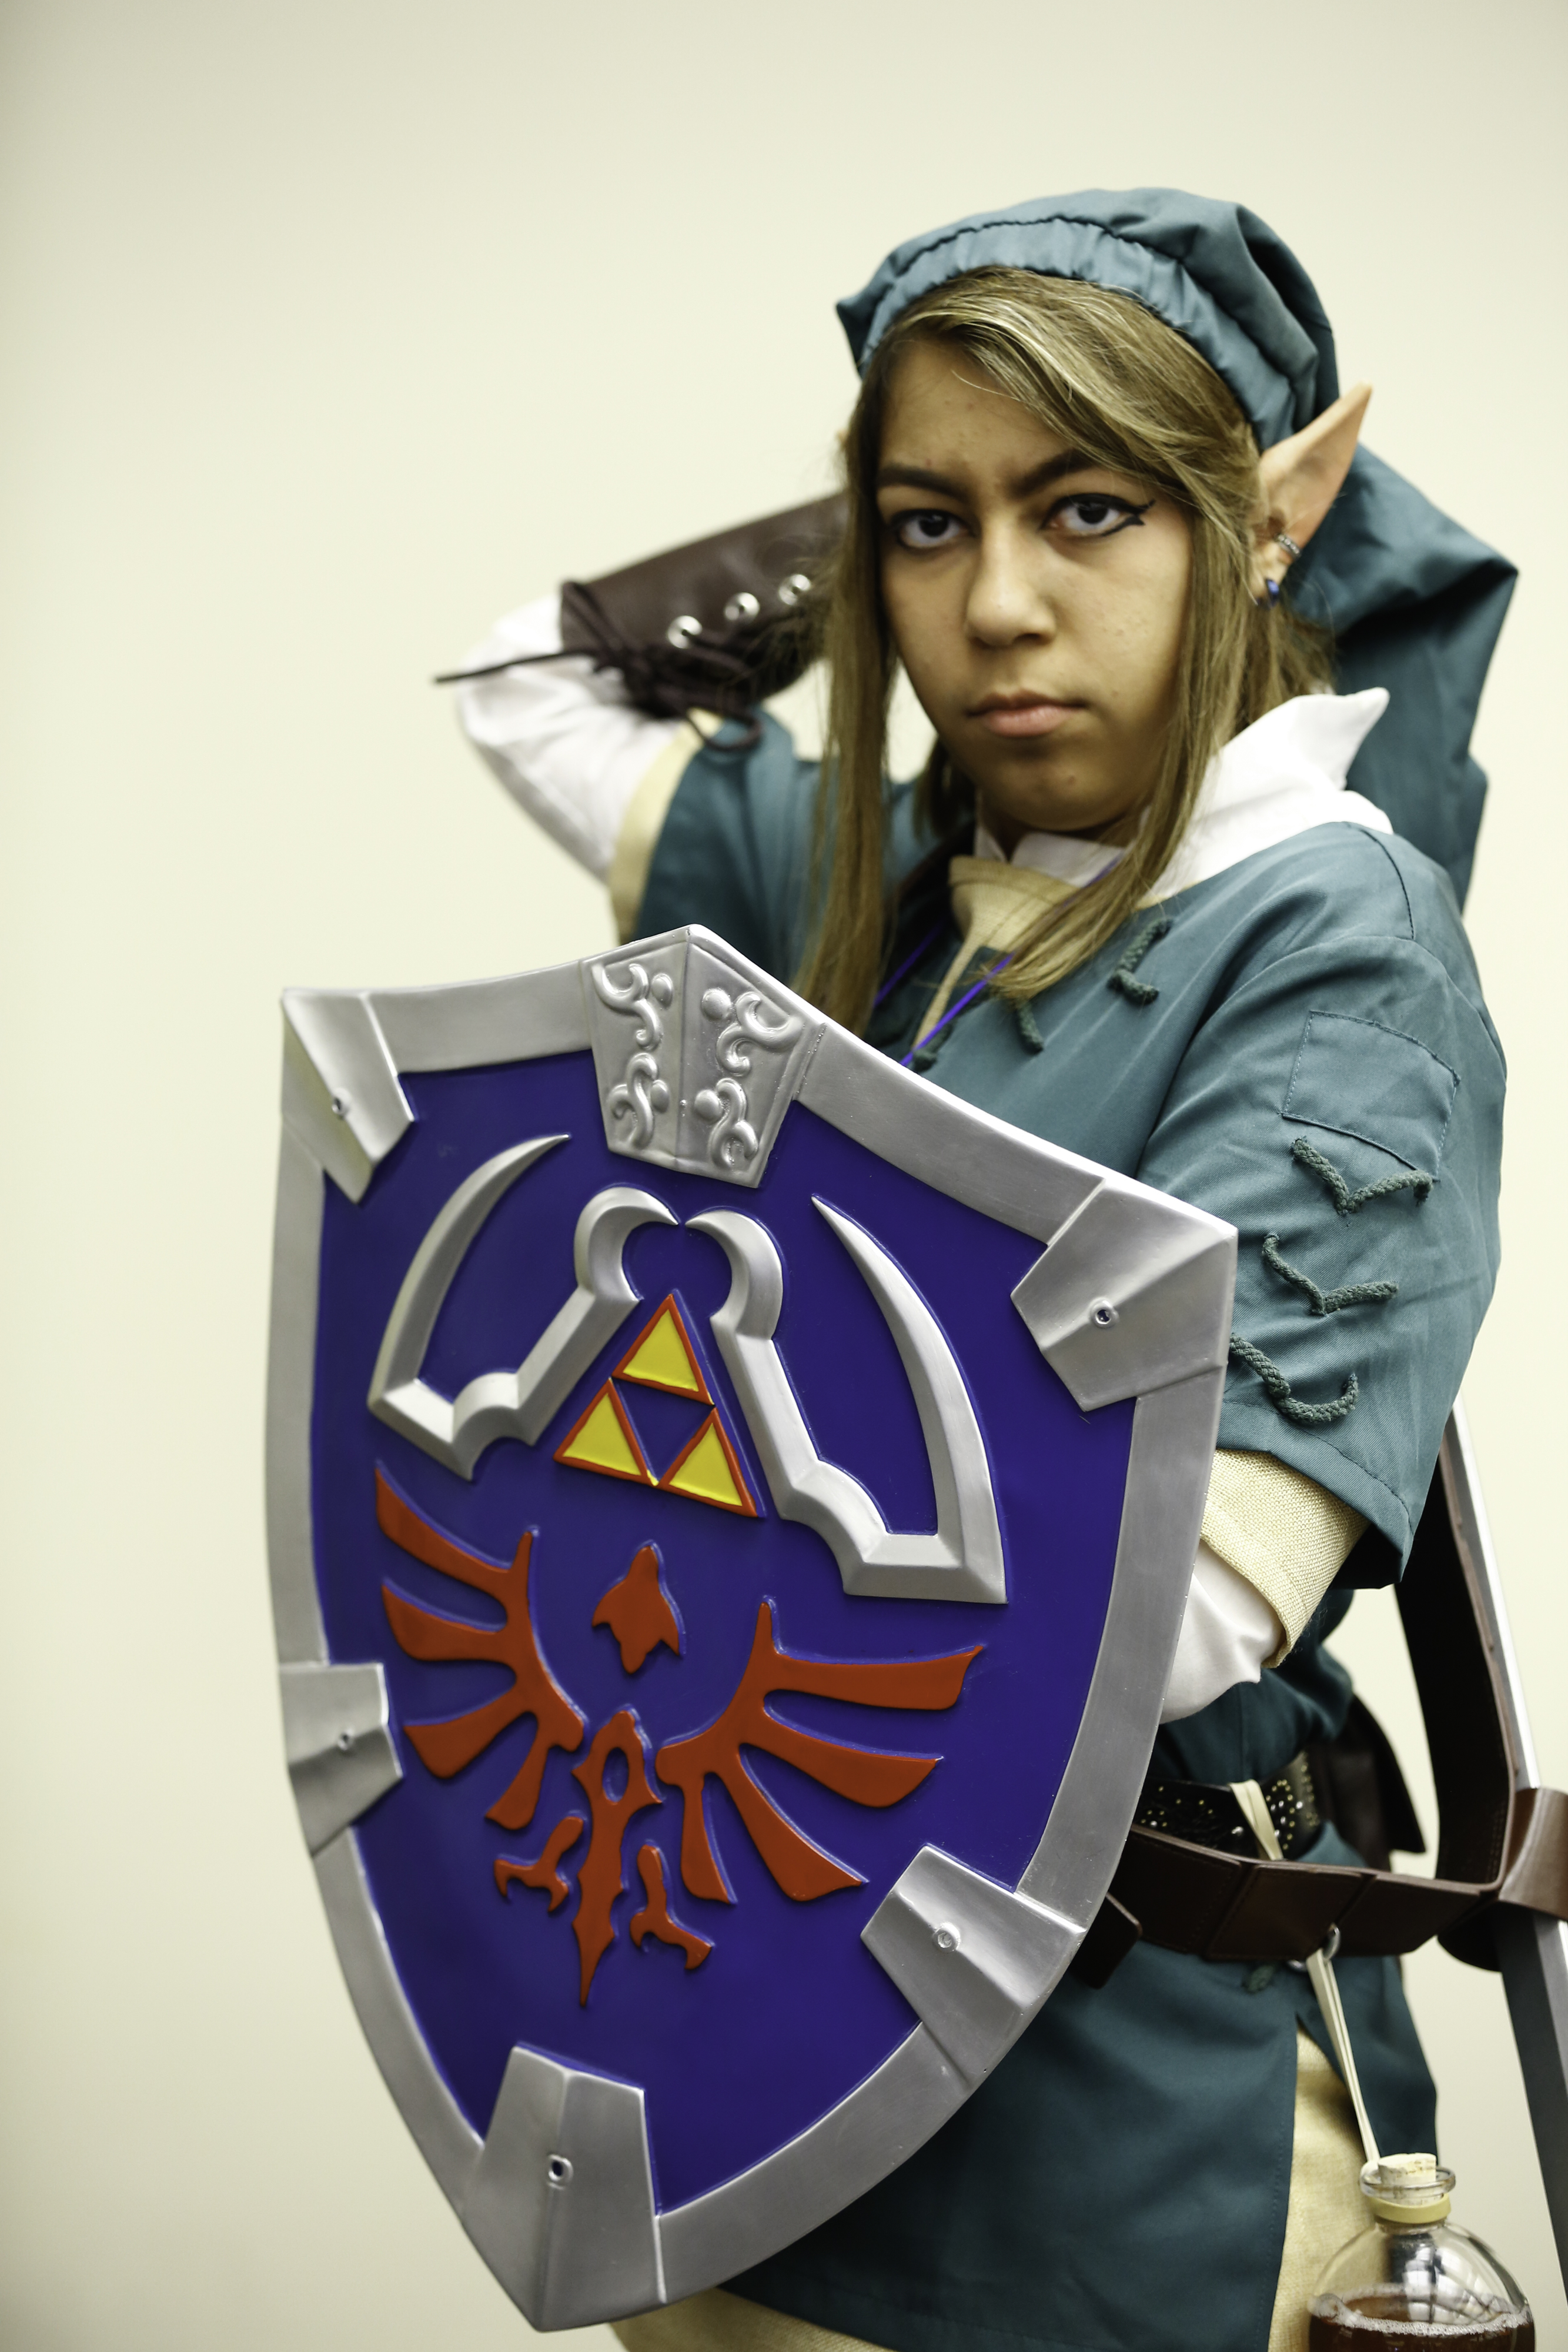 Cosplayer dressed as Link from The Legend of Zelda.